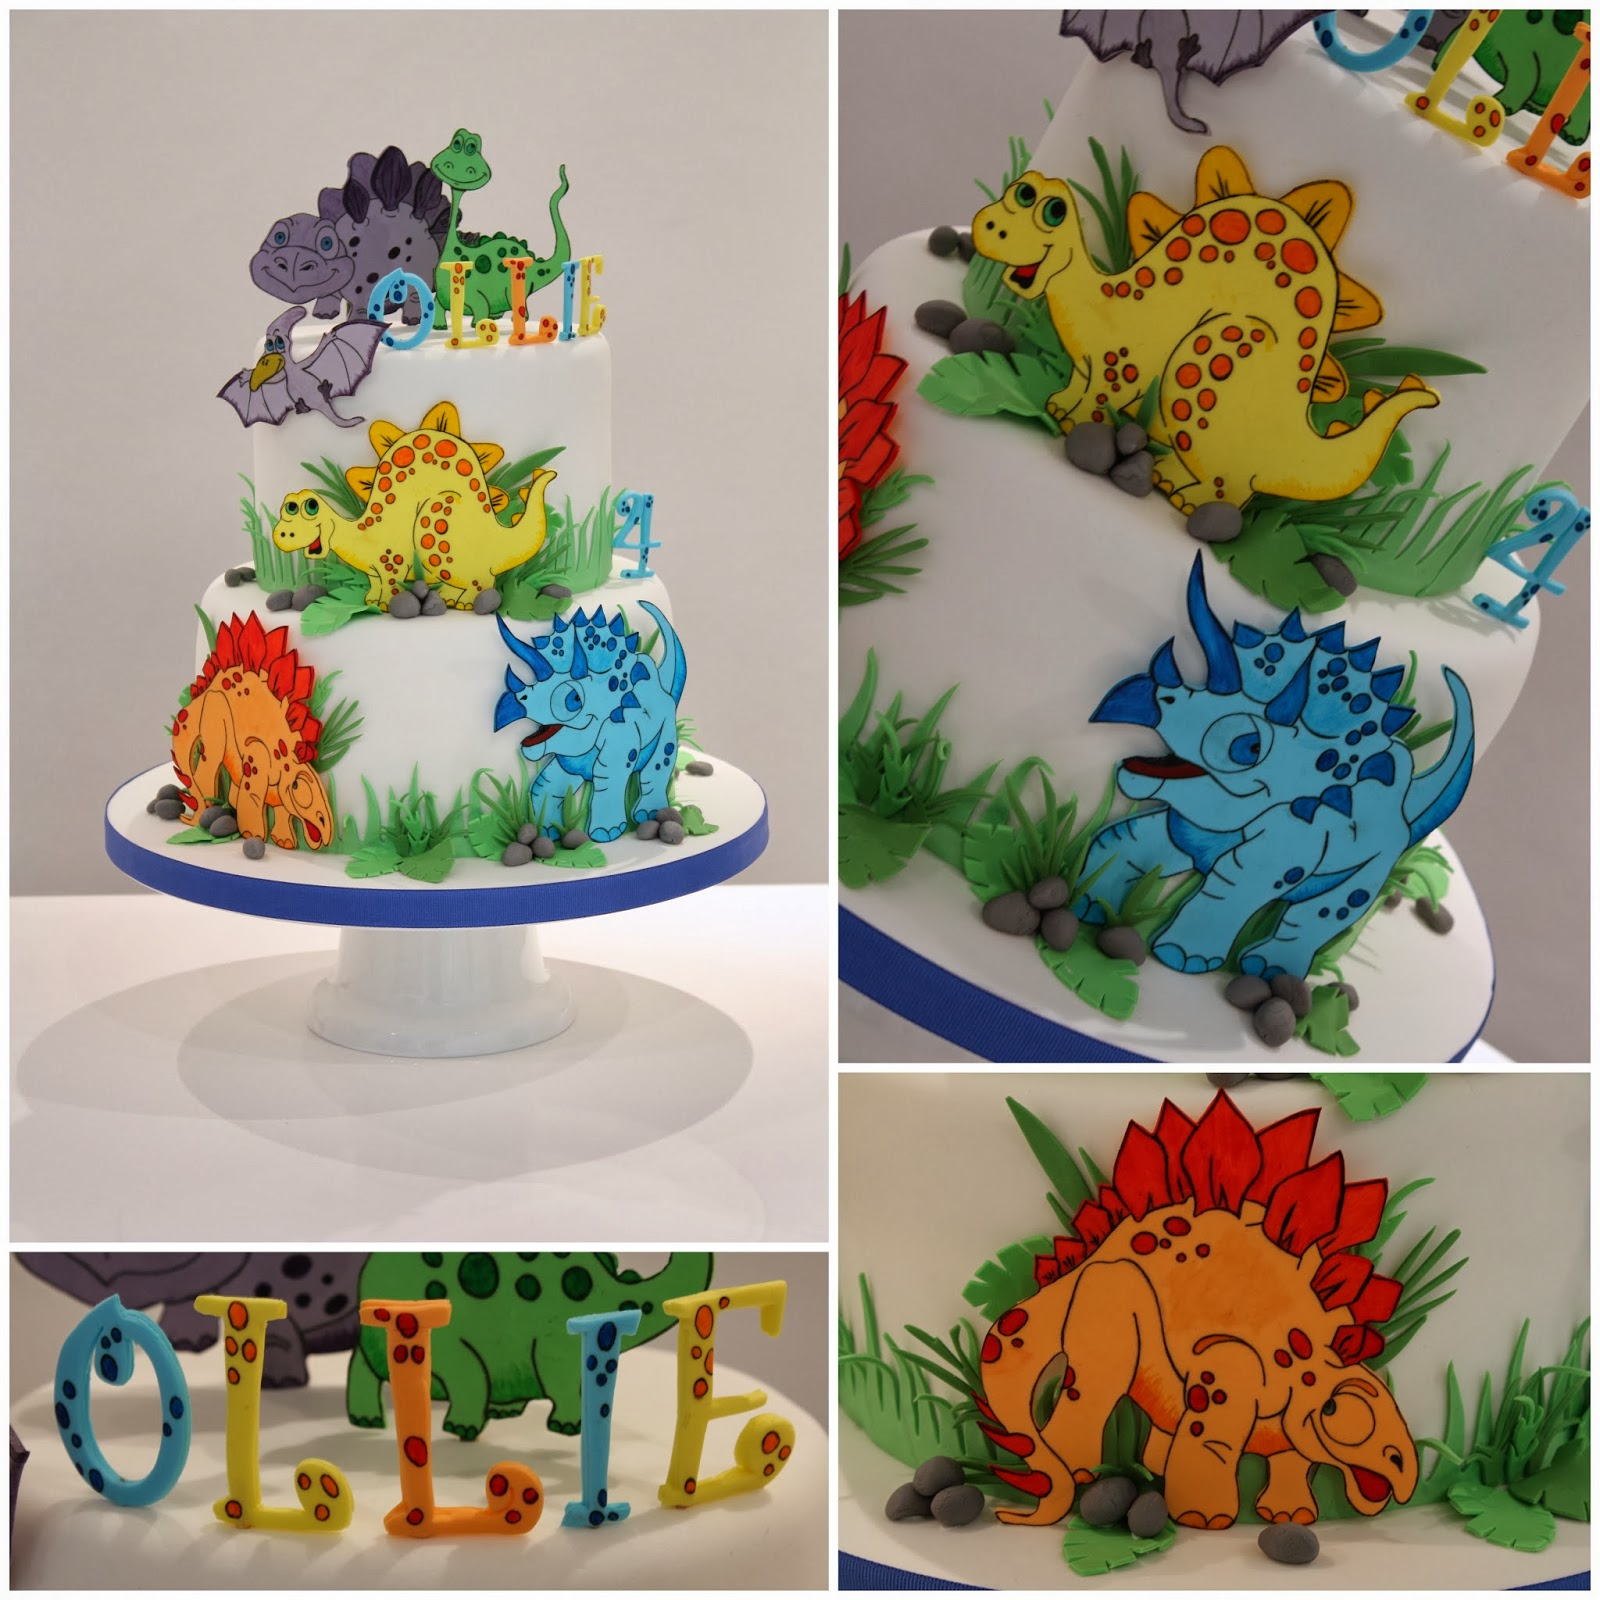 Dinosaur Cake Decorations Uk : Tiers & Tiaras: Dinosaur Party